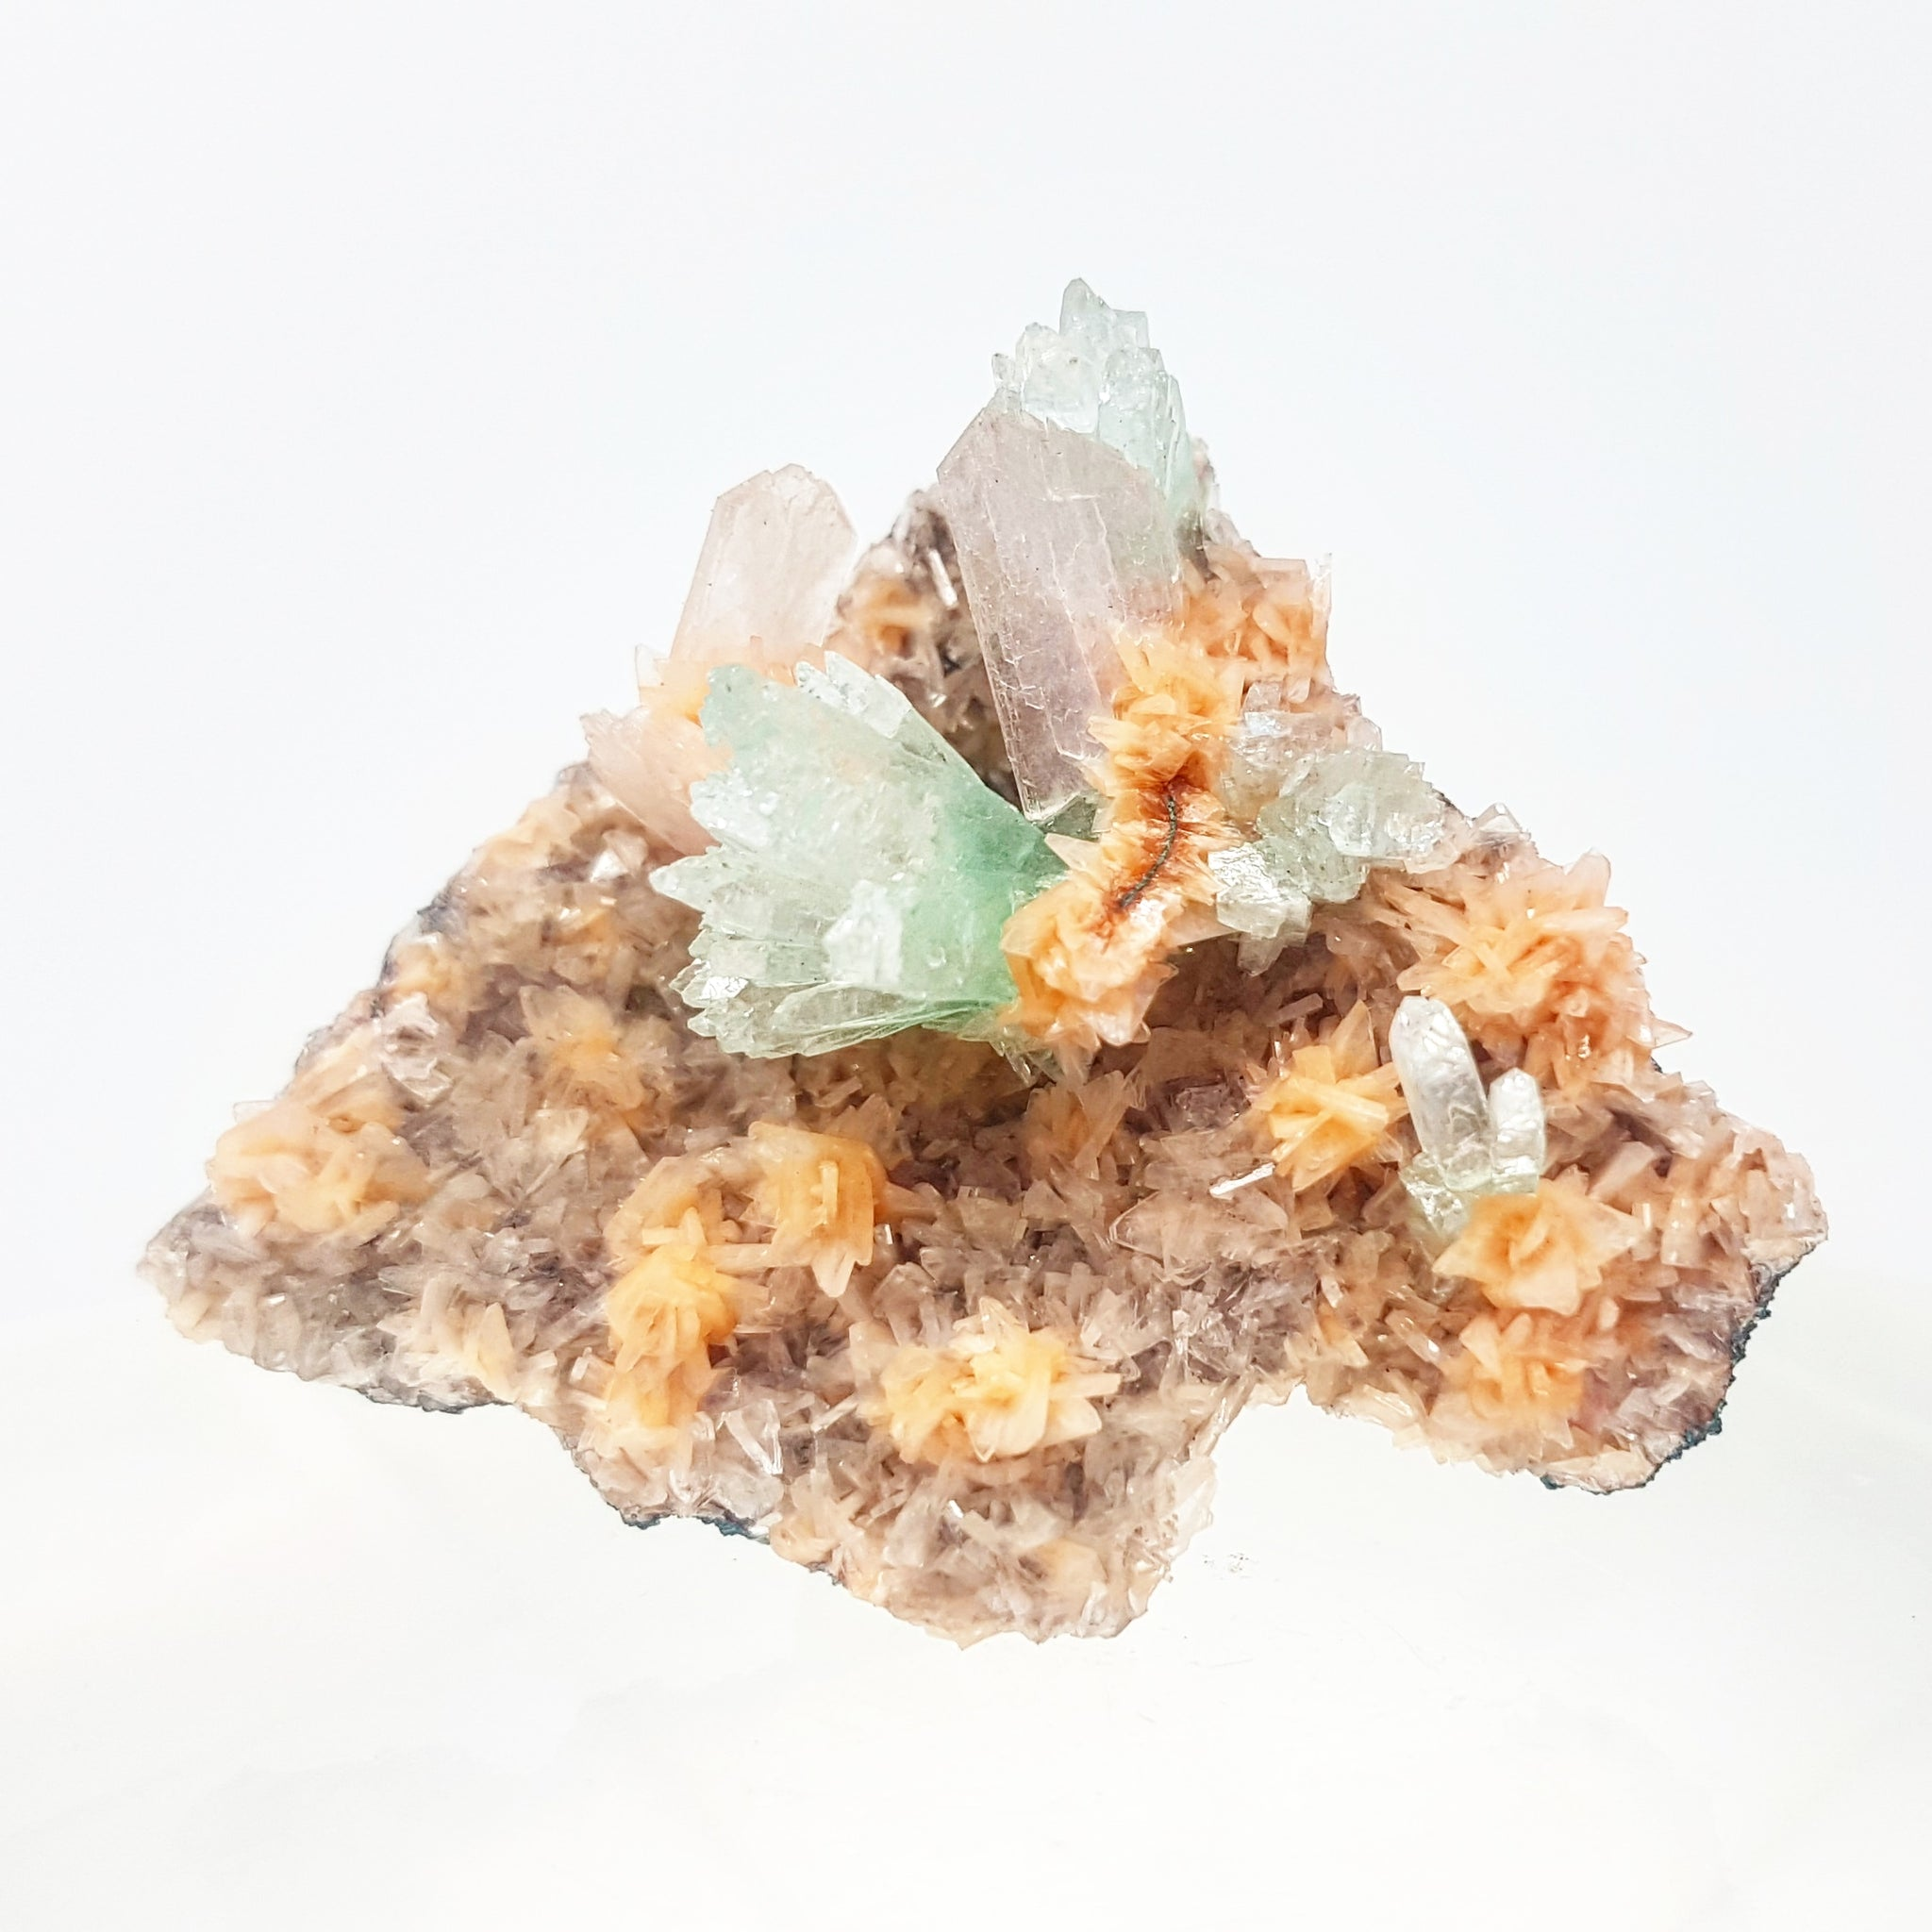 Green Apophyllite, Stilbite & Heulandite #2- India